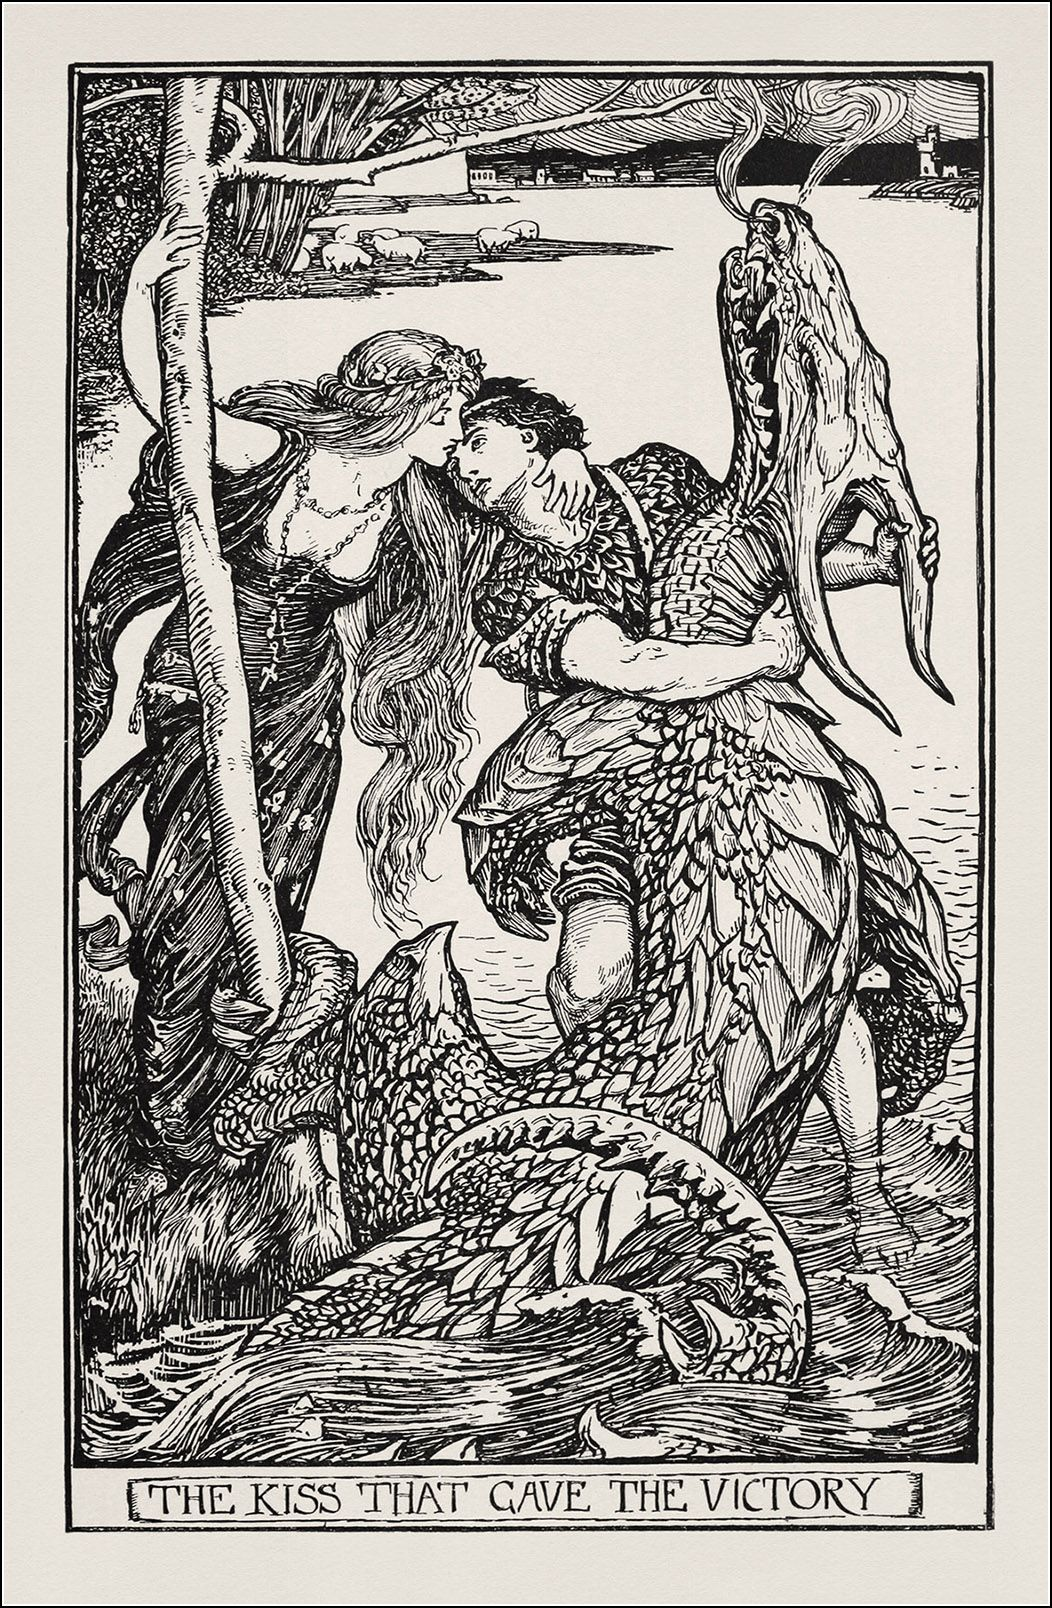 Henry Justice Ford - The crimson fairy book, edited by Andrew Lang, 1903